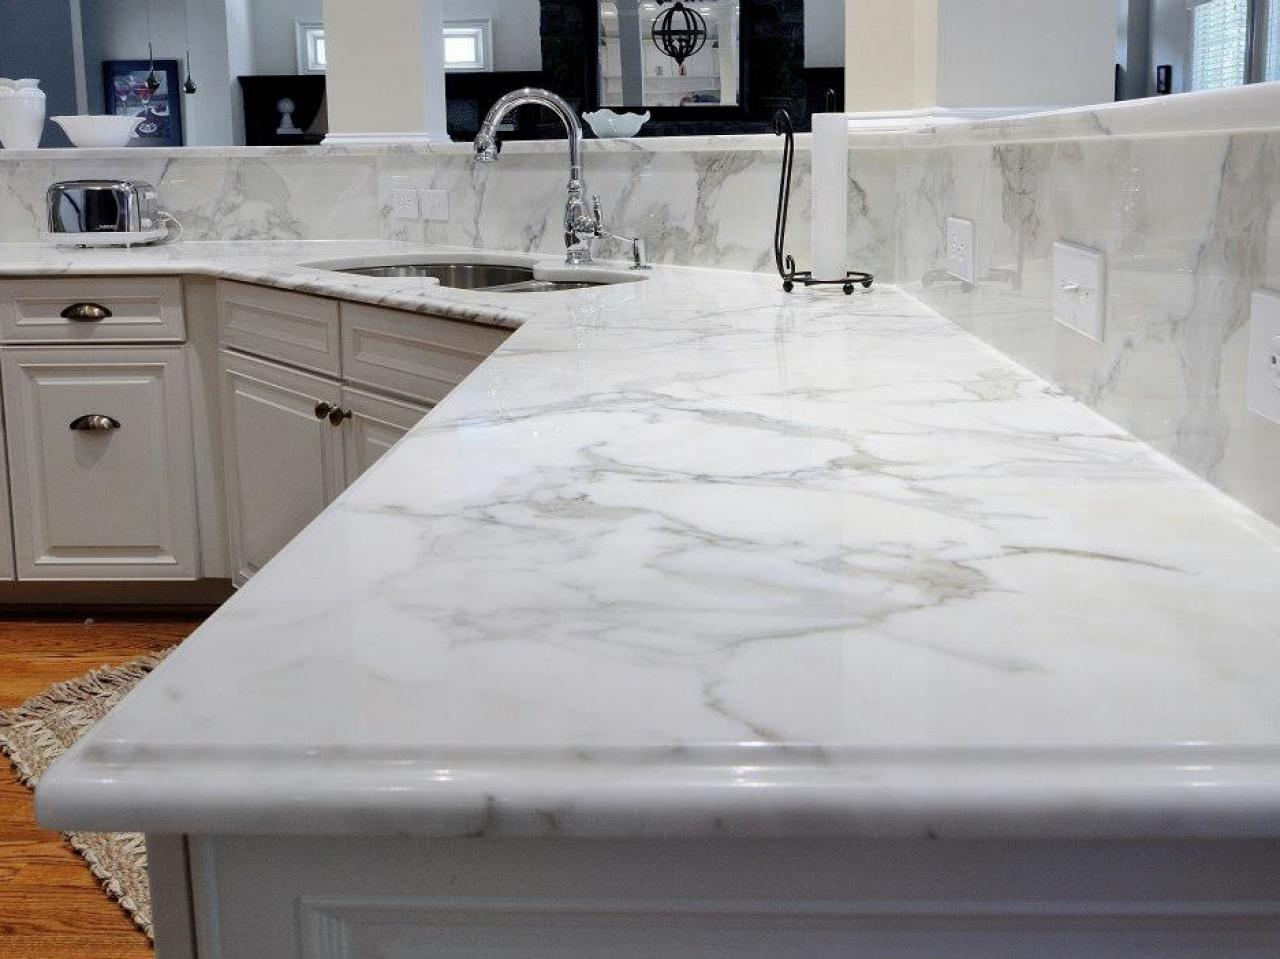 Corian Marble Countertops Quartz Countertops Continue Their Huge Popularity For Kitchens